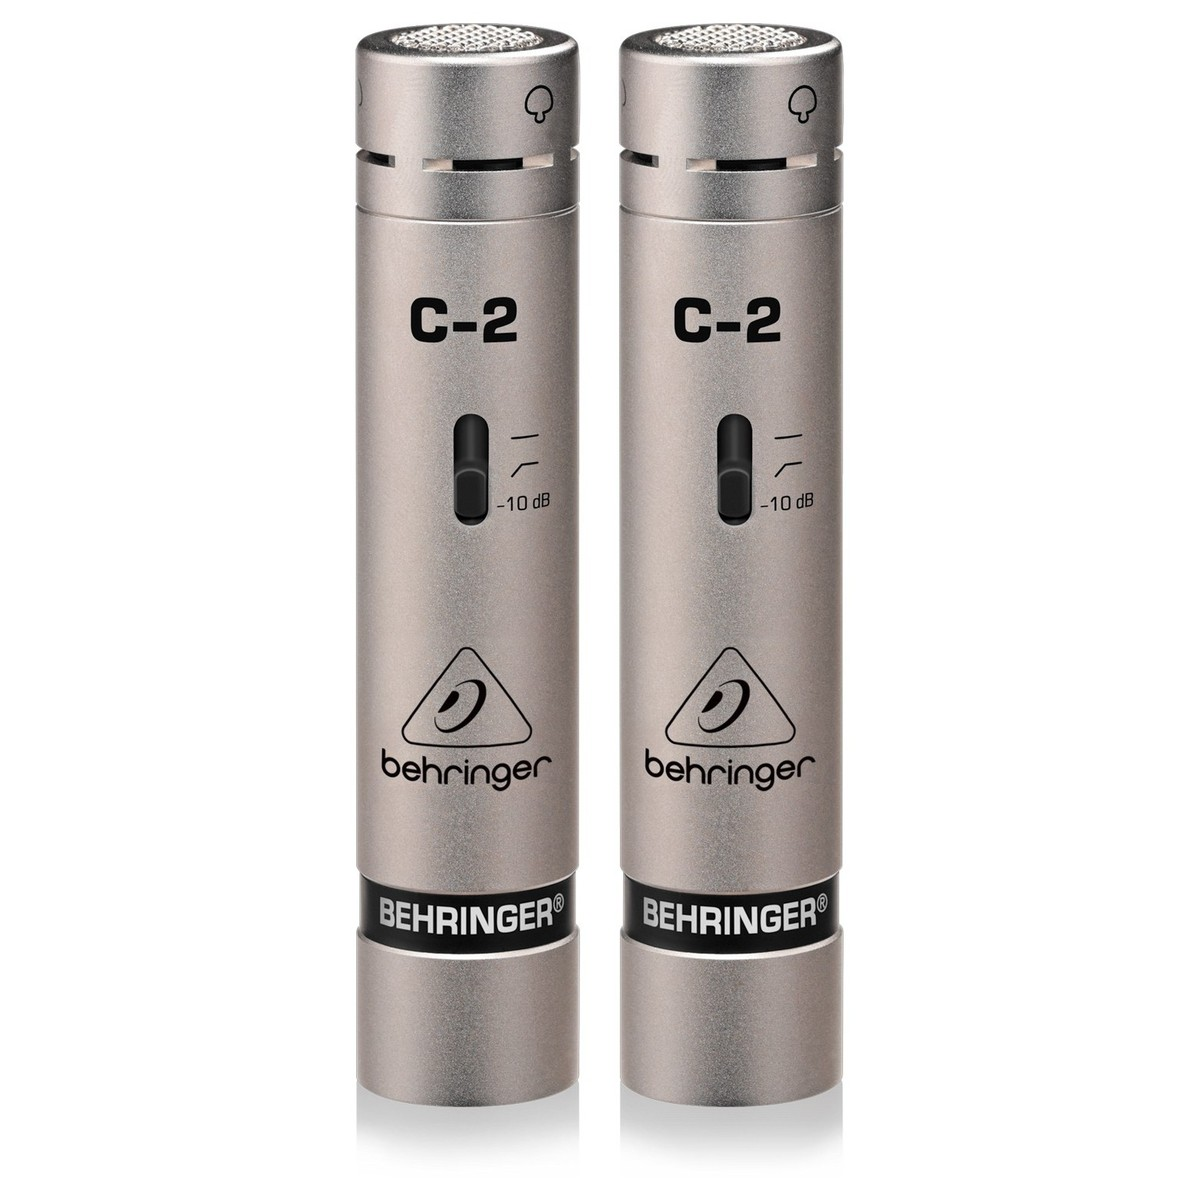 Image of Behringer C-2 Condenser Microphone Matched Pair